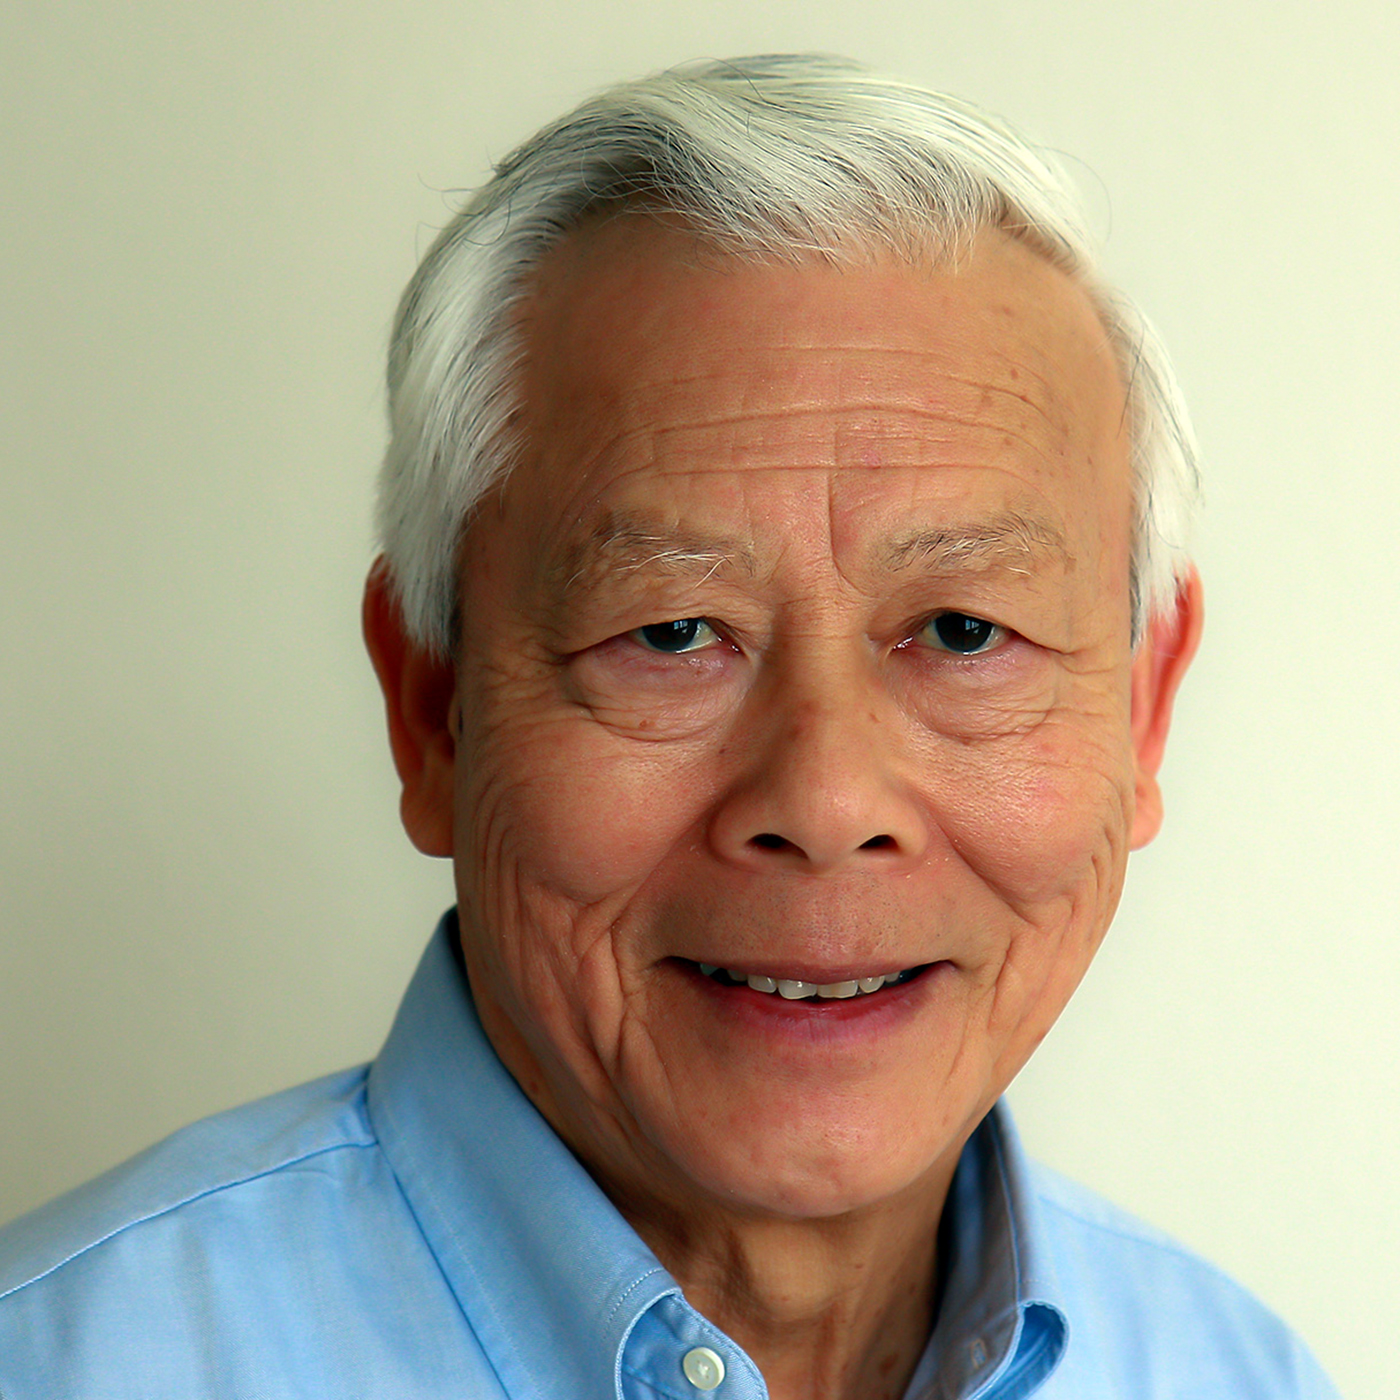 Hai B. Pho, Ph.D., is Professor Emeritus of Political Science, University of Massachusetts Lowell. Pho specializes in Southeast Asian politics, Vietnamese history and civilization, international relations, US foreign policy and refugee policy.